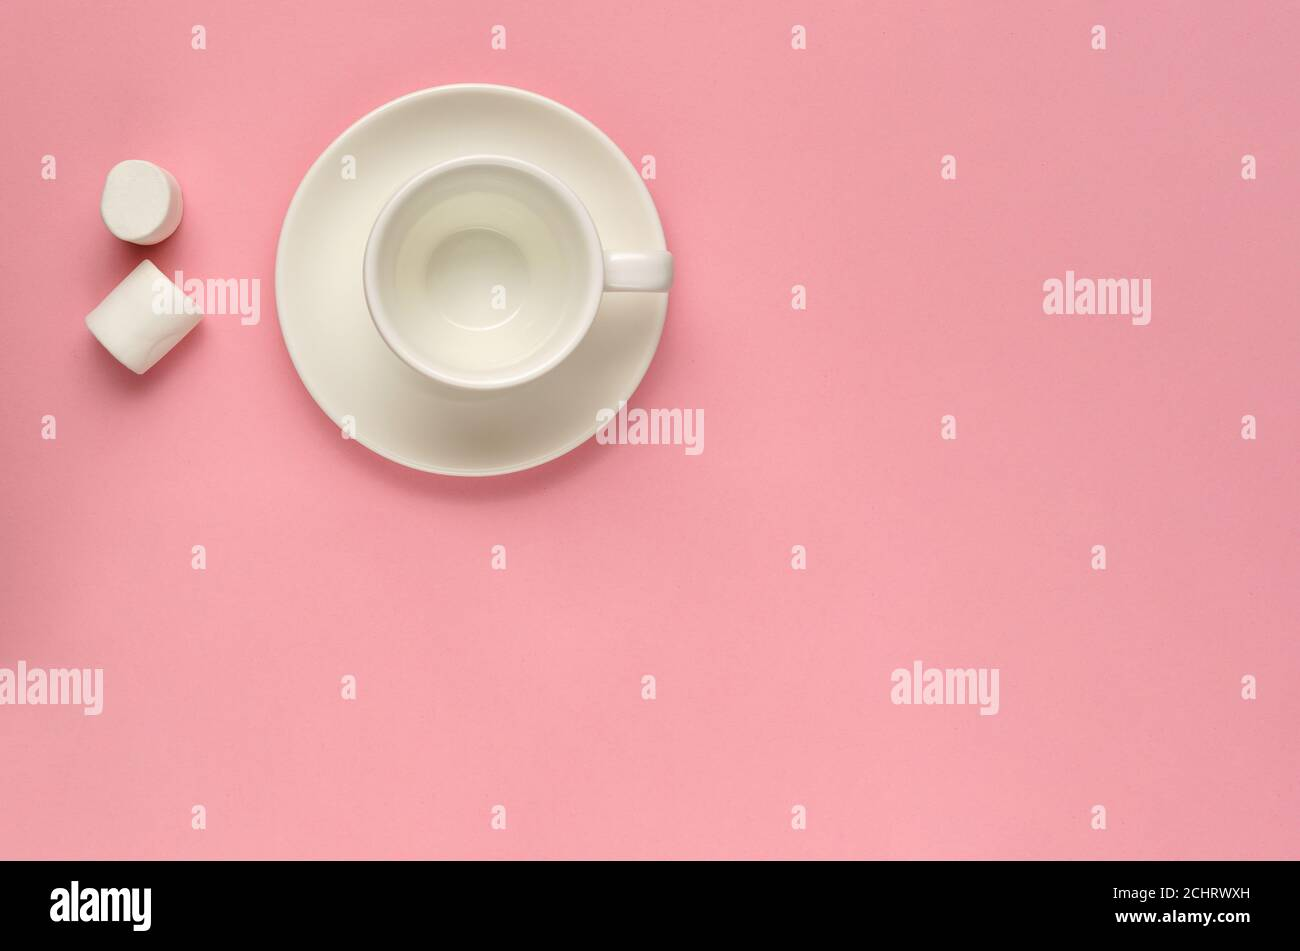 Clean Empty White Coffee Cup With Saucer And Two Marshmallows On Pink Background Minimal Template For Feminine Blog Social Media Networks Stock Photo Alamy